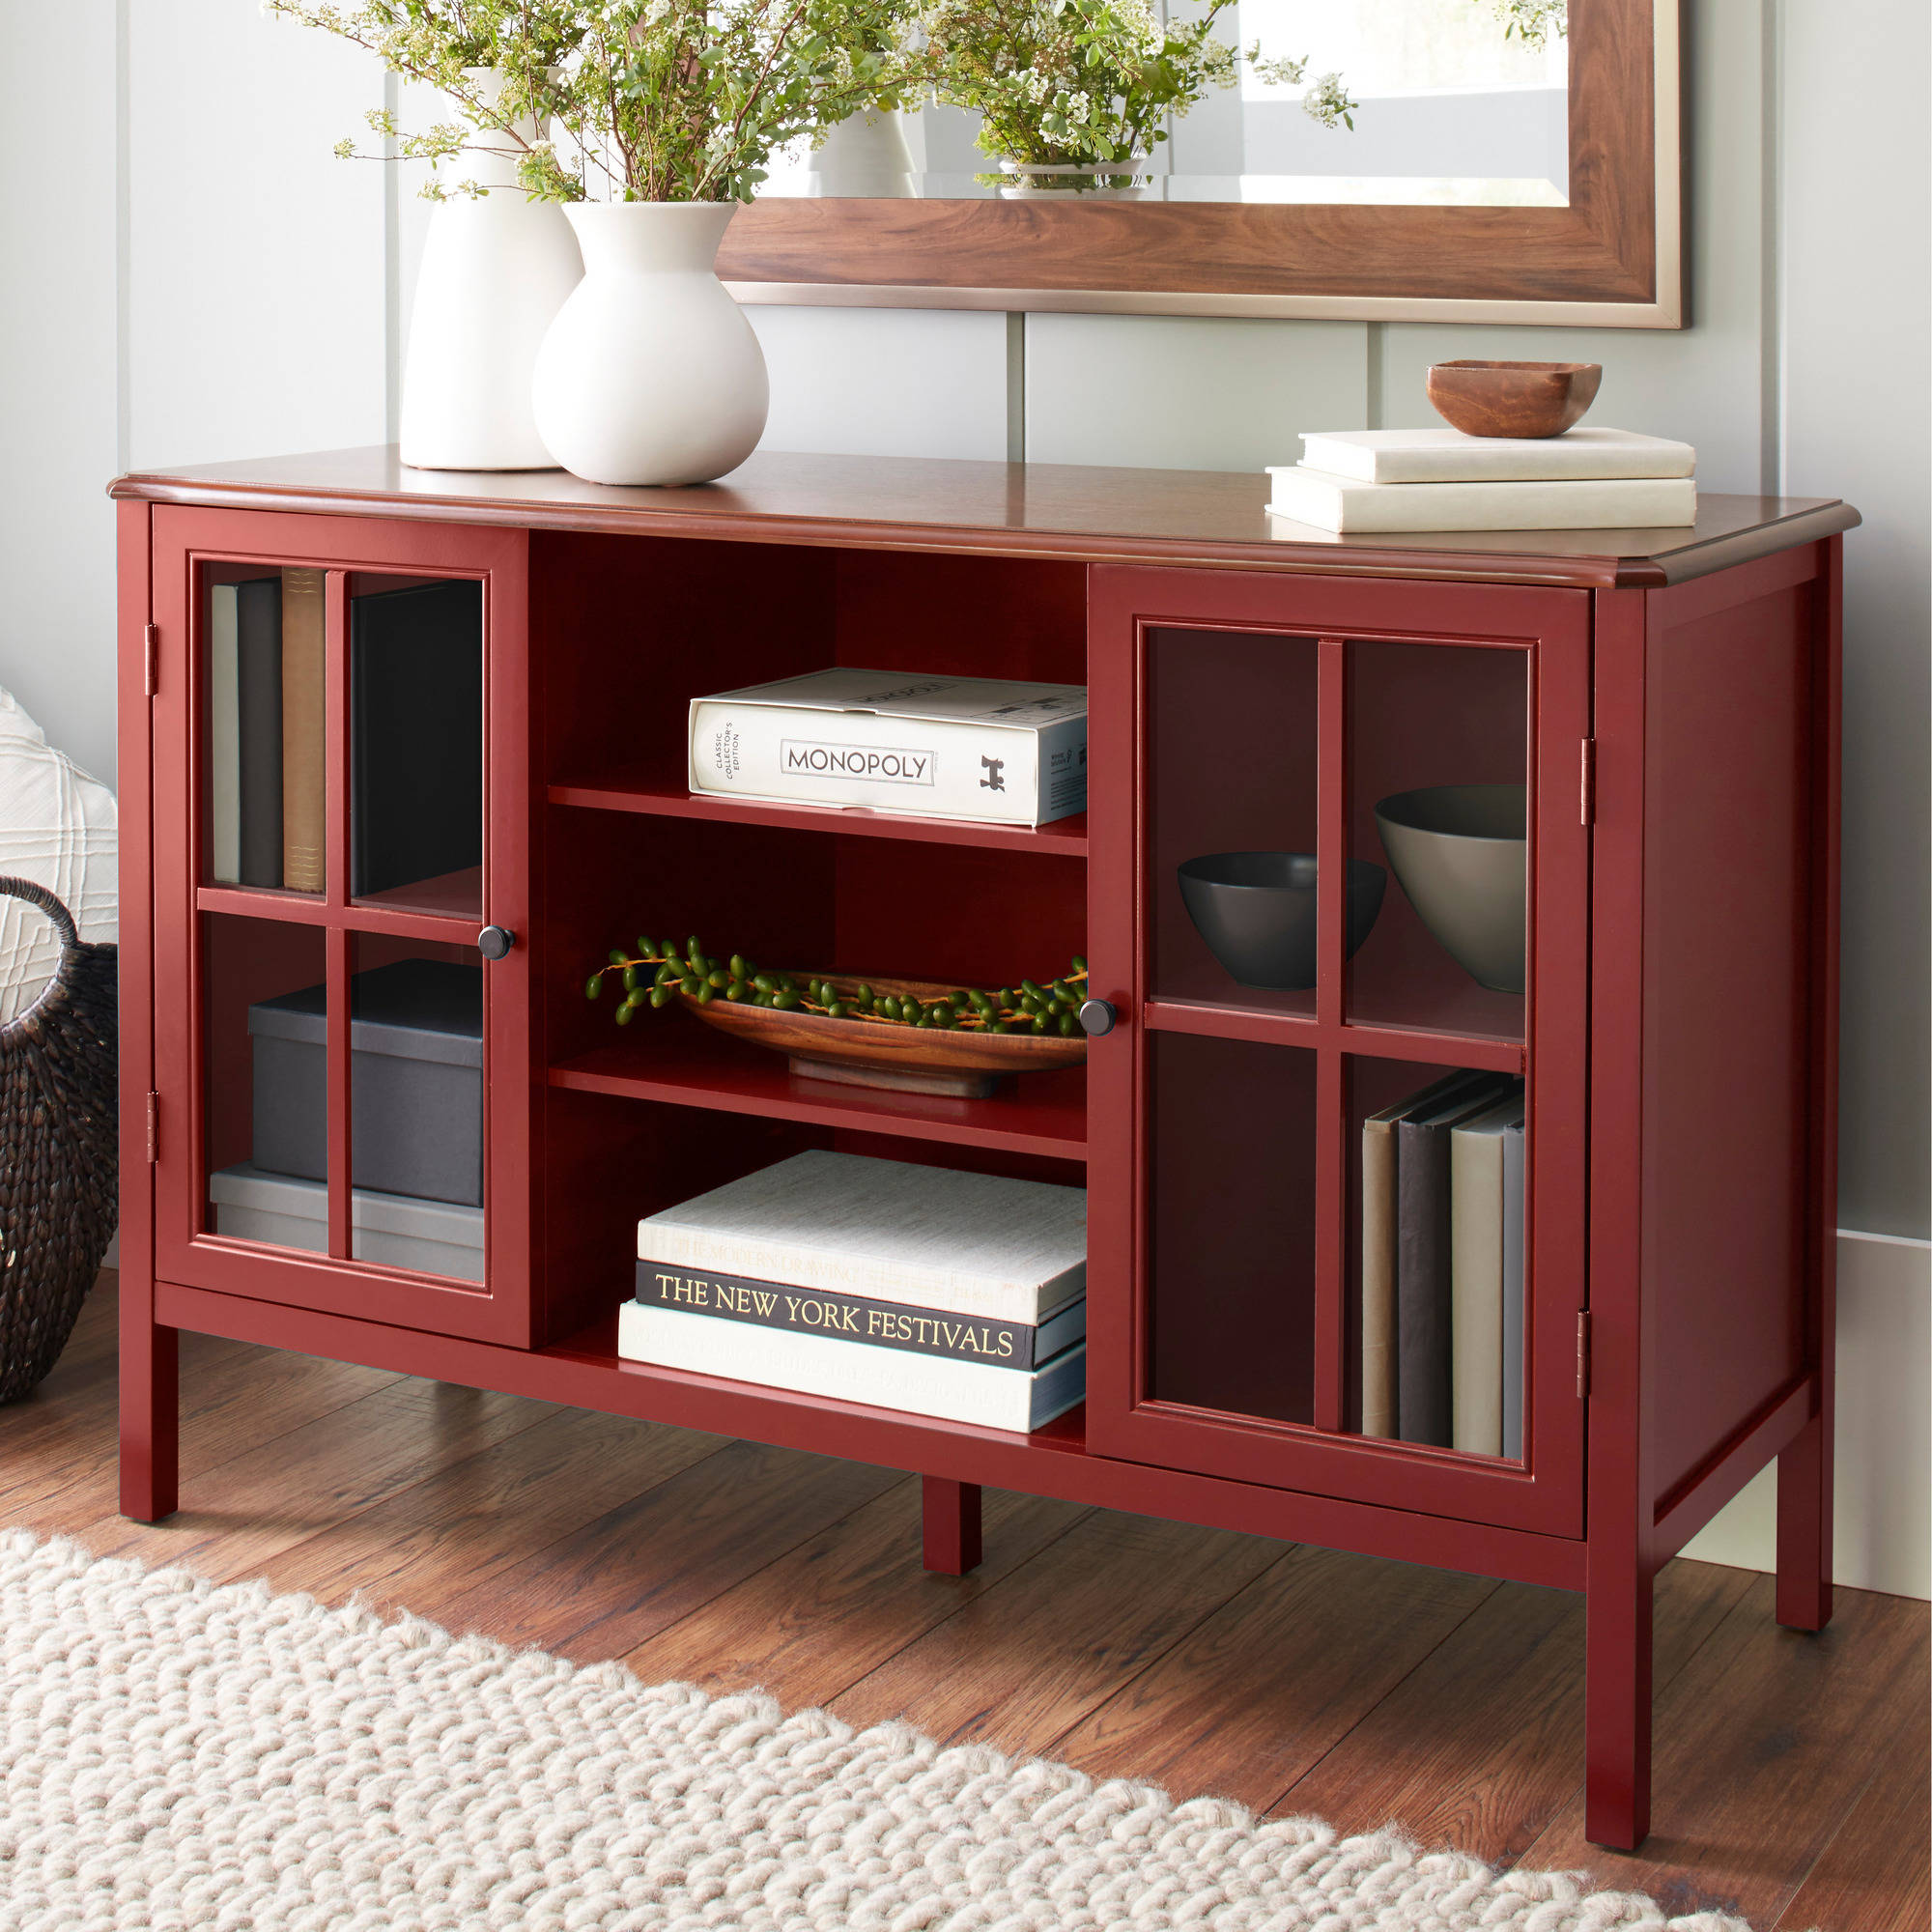 10 Spring Street Hinsdale 2-Door with Center Shelves Console Cabinet, Multiple Colors